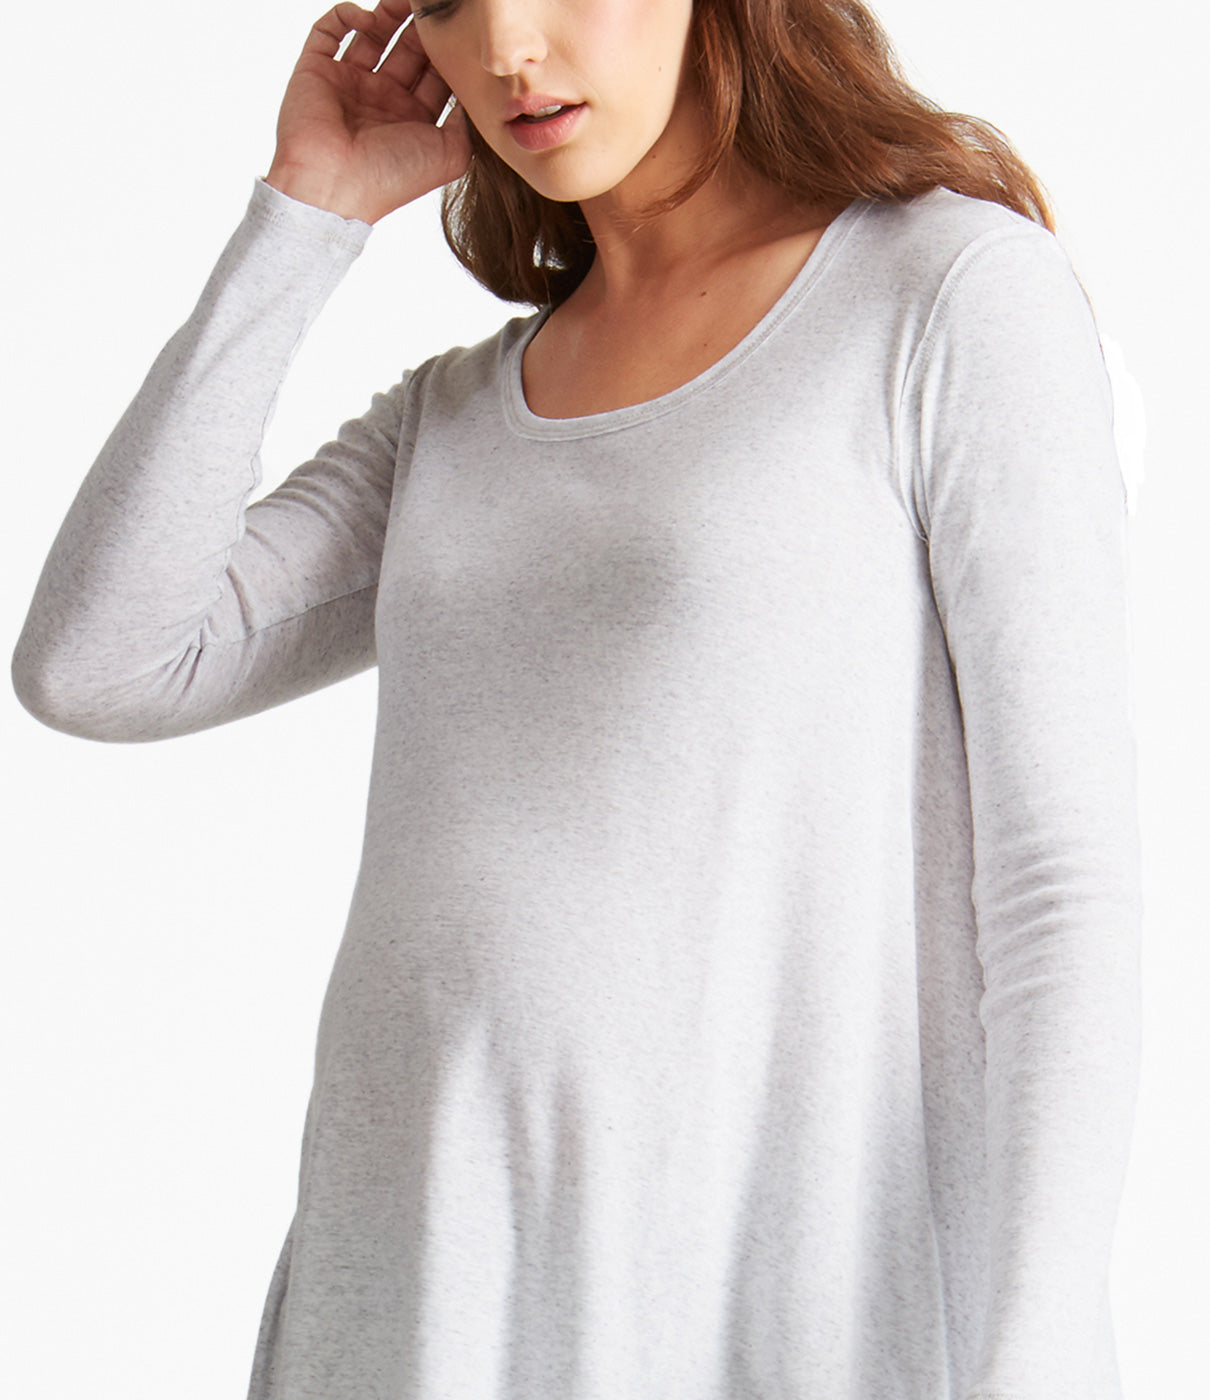 Fashion + FunctionLong, fitted sleeves for max coverage and loose through belly for an ever so comfortable fit.